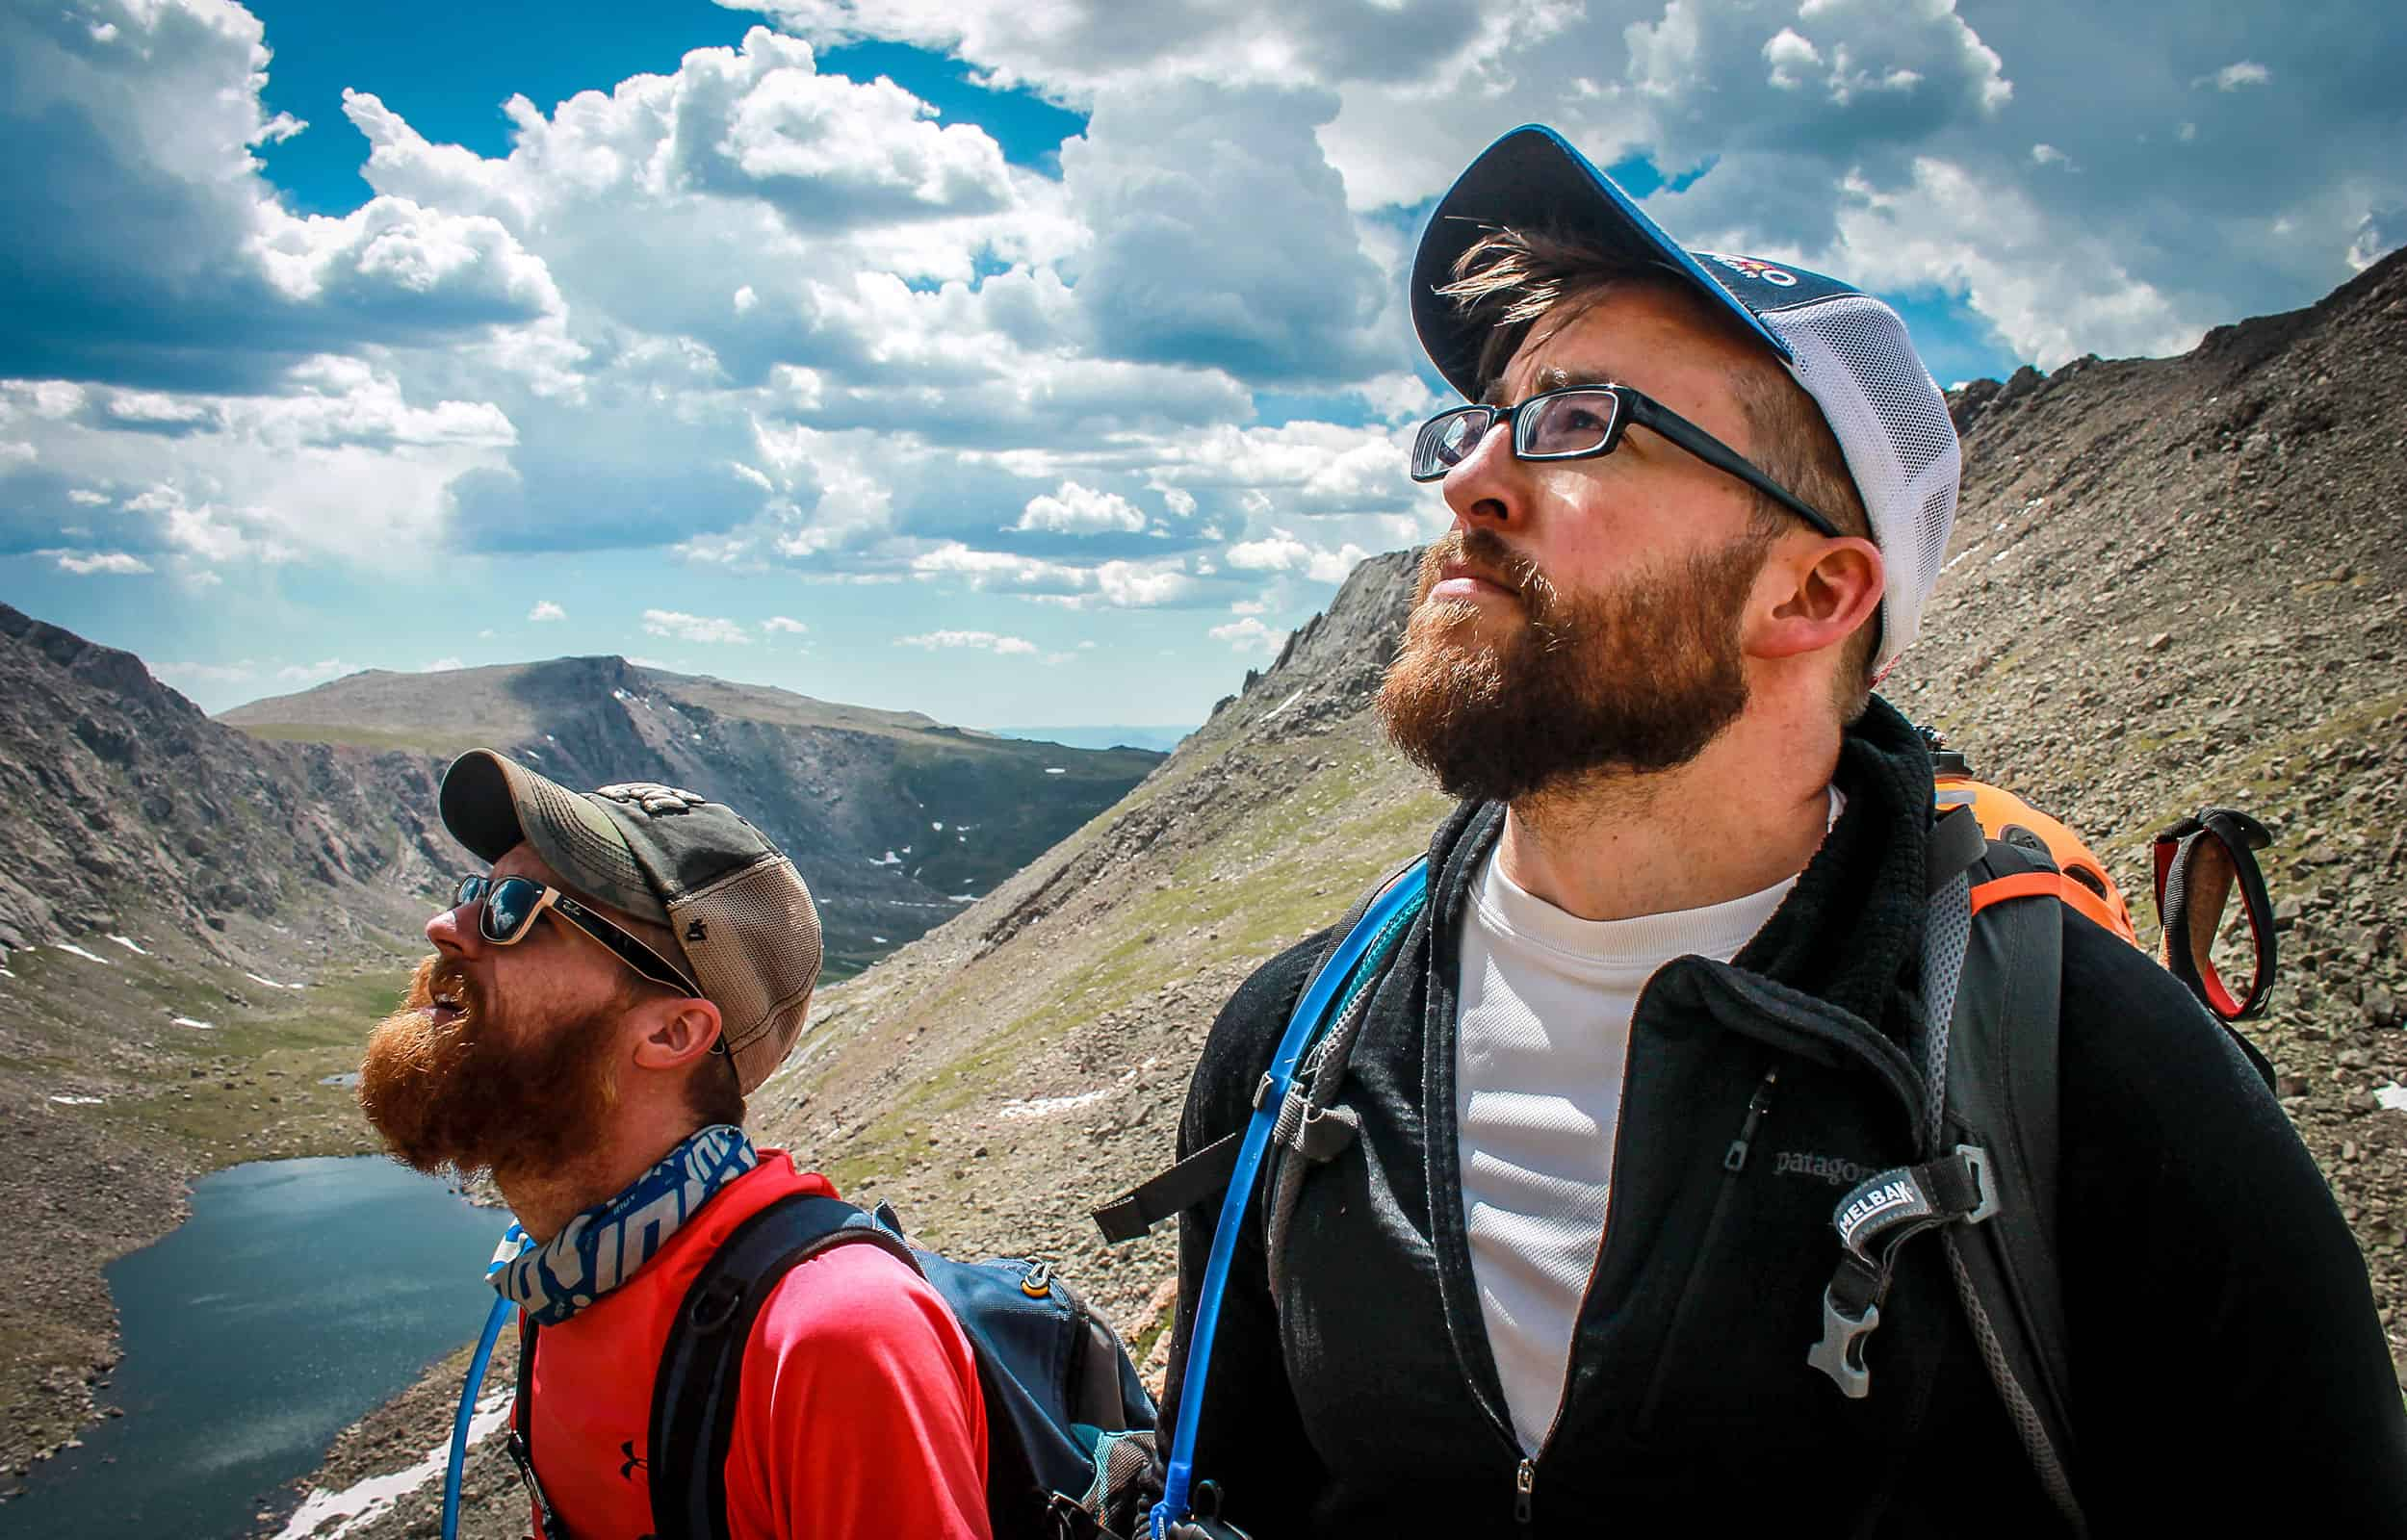 two guys looking at the sky while hiking determining what is up ahead